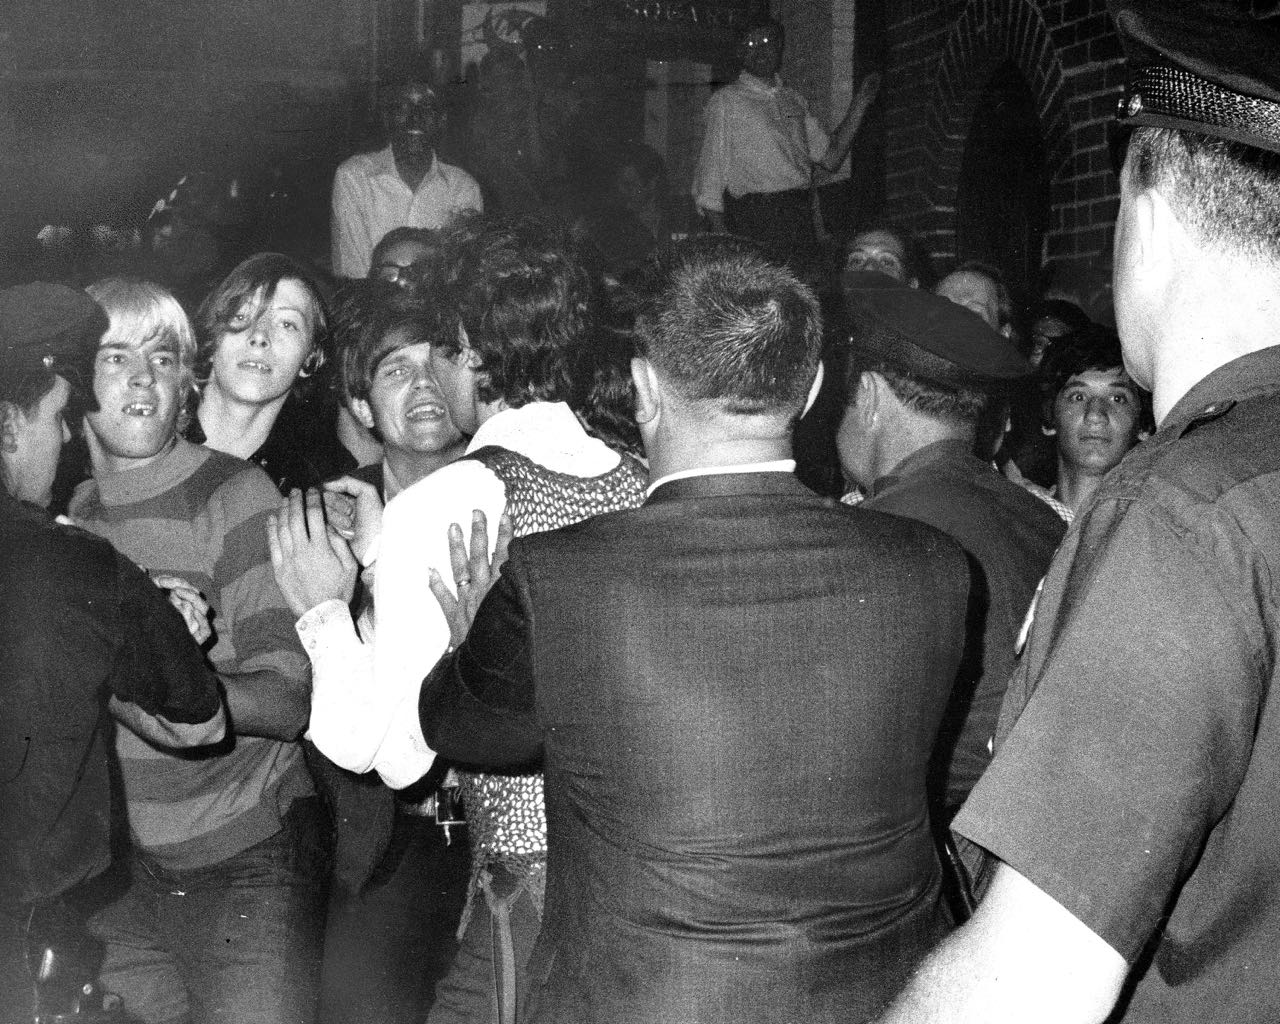 Stonewall at 50: Passing the Mantle